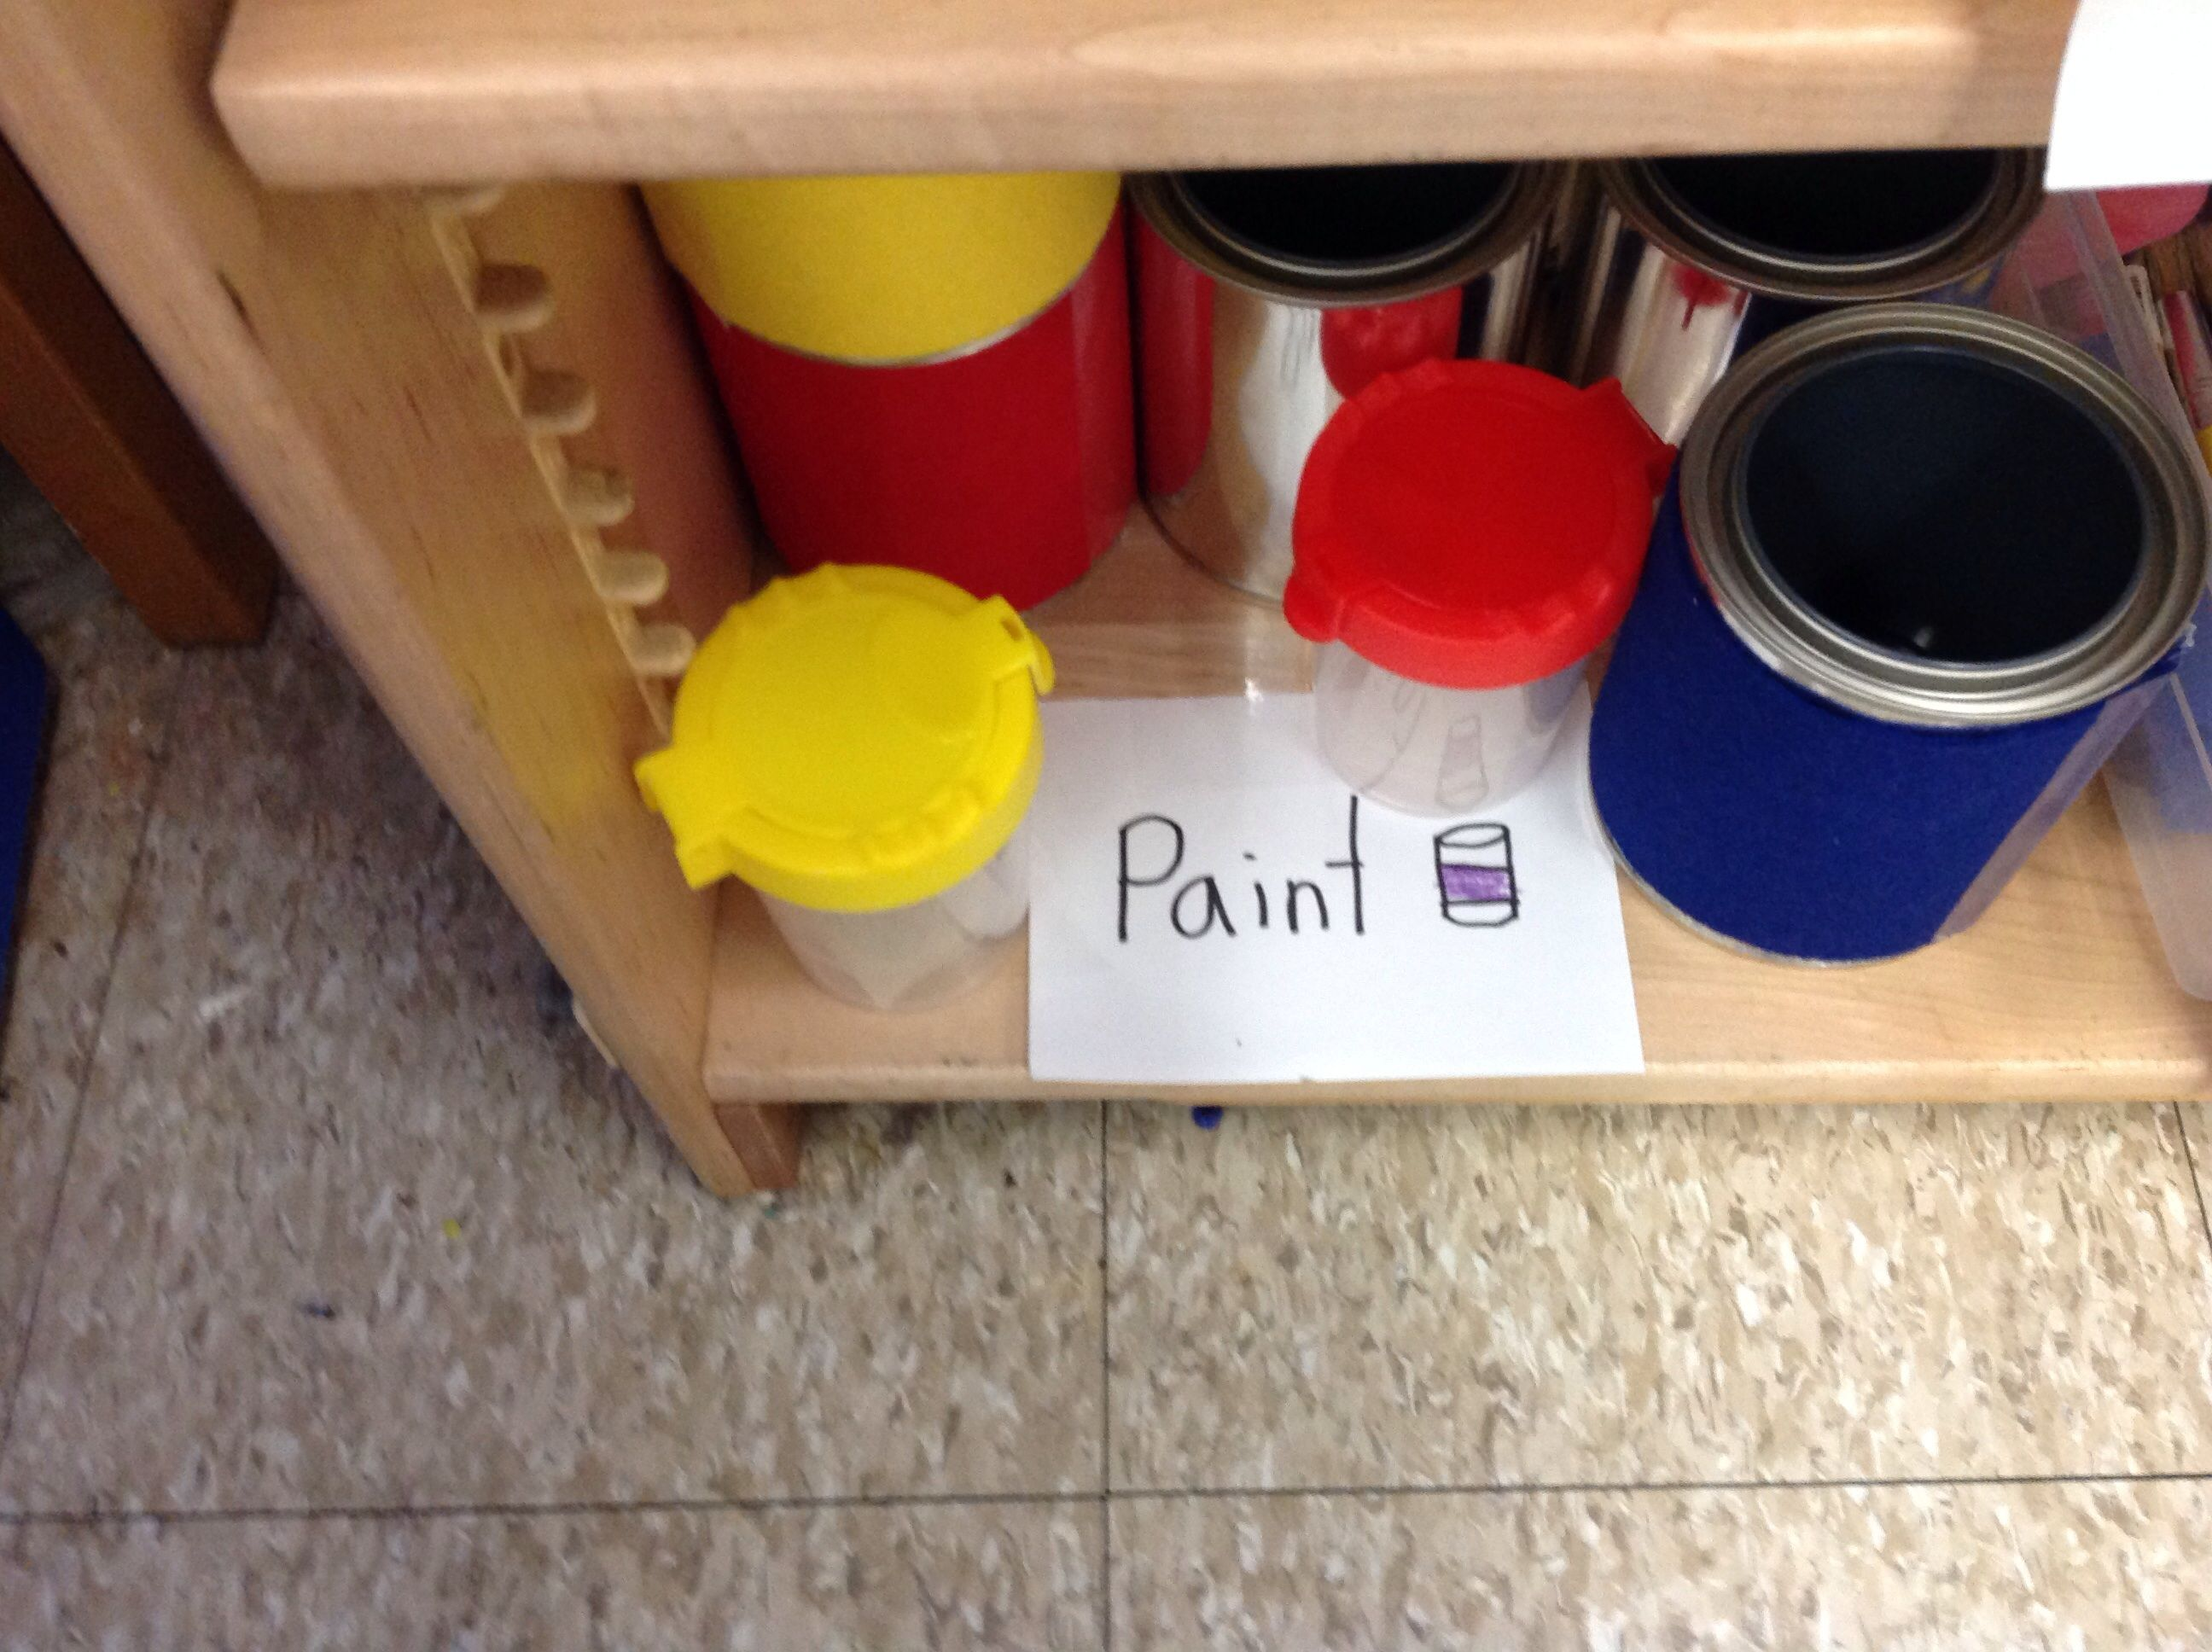 Paint In The Home Improvement Store